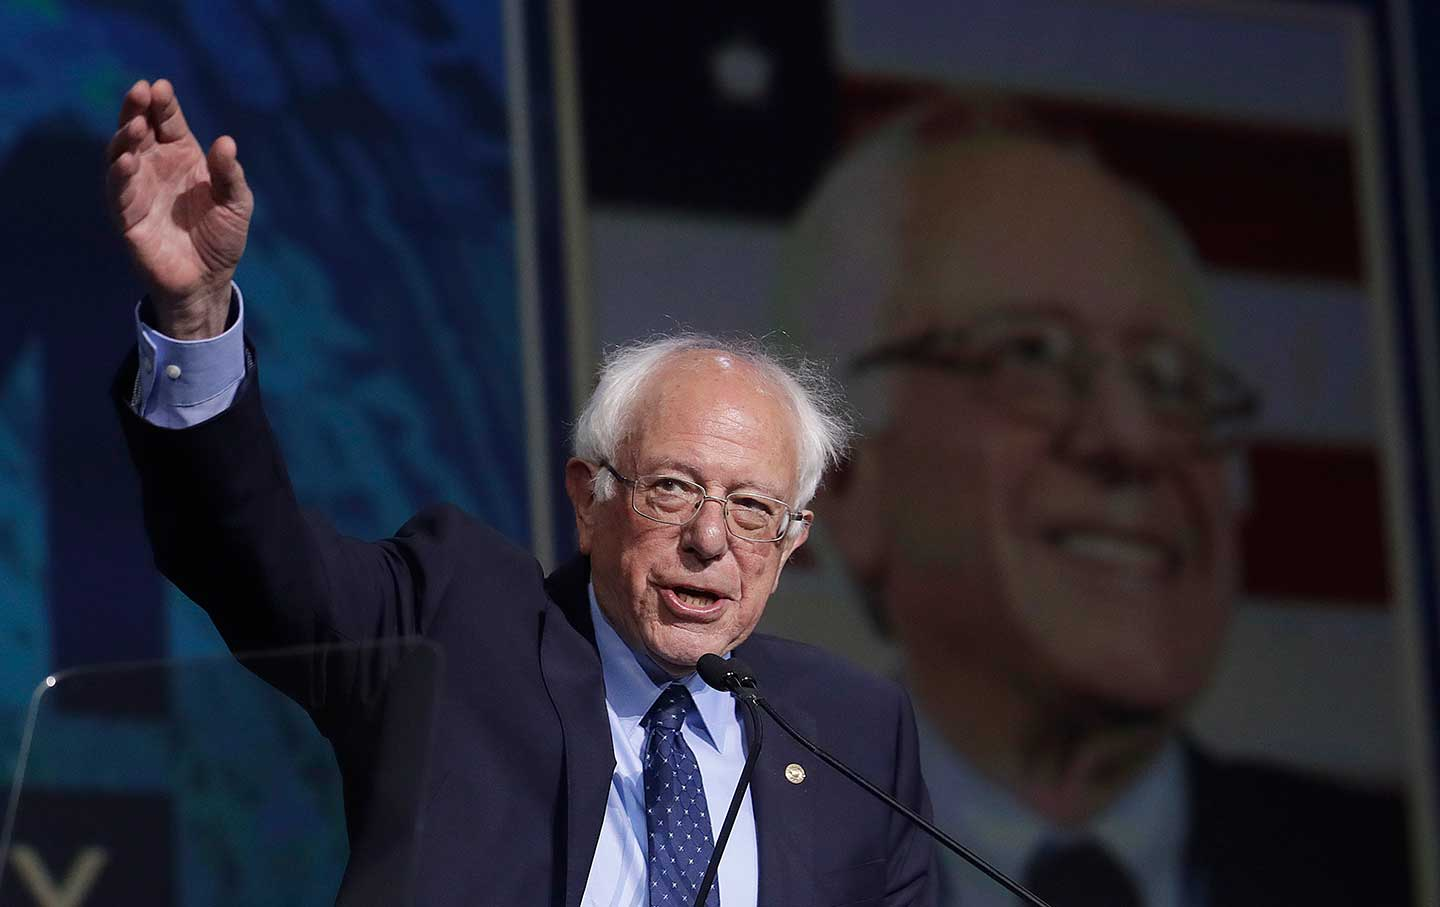 Bernie Sanders We Have To Talk About Democratic